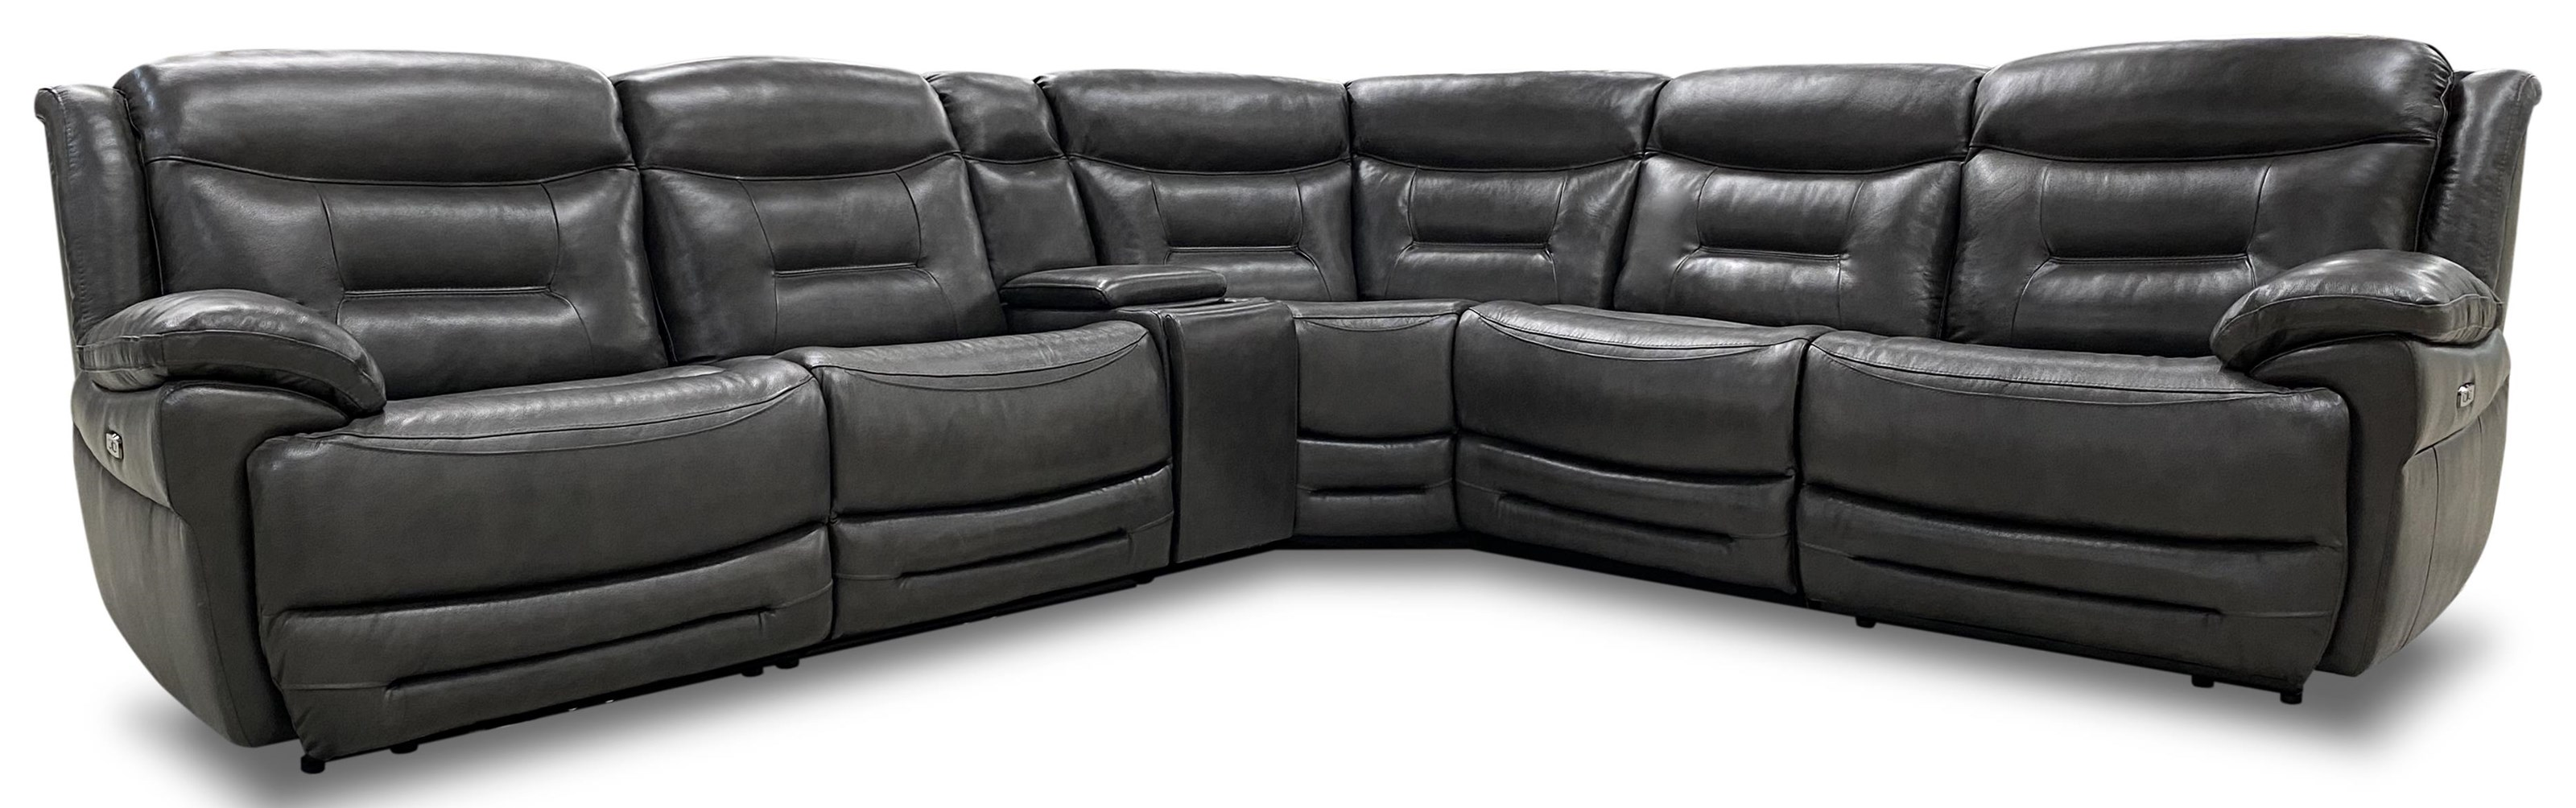 PWR Leather Recliner W/PWR Headrests